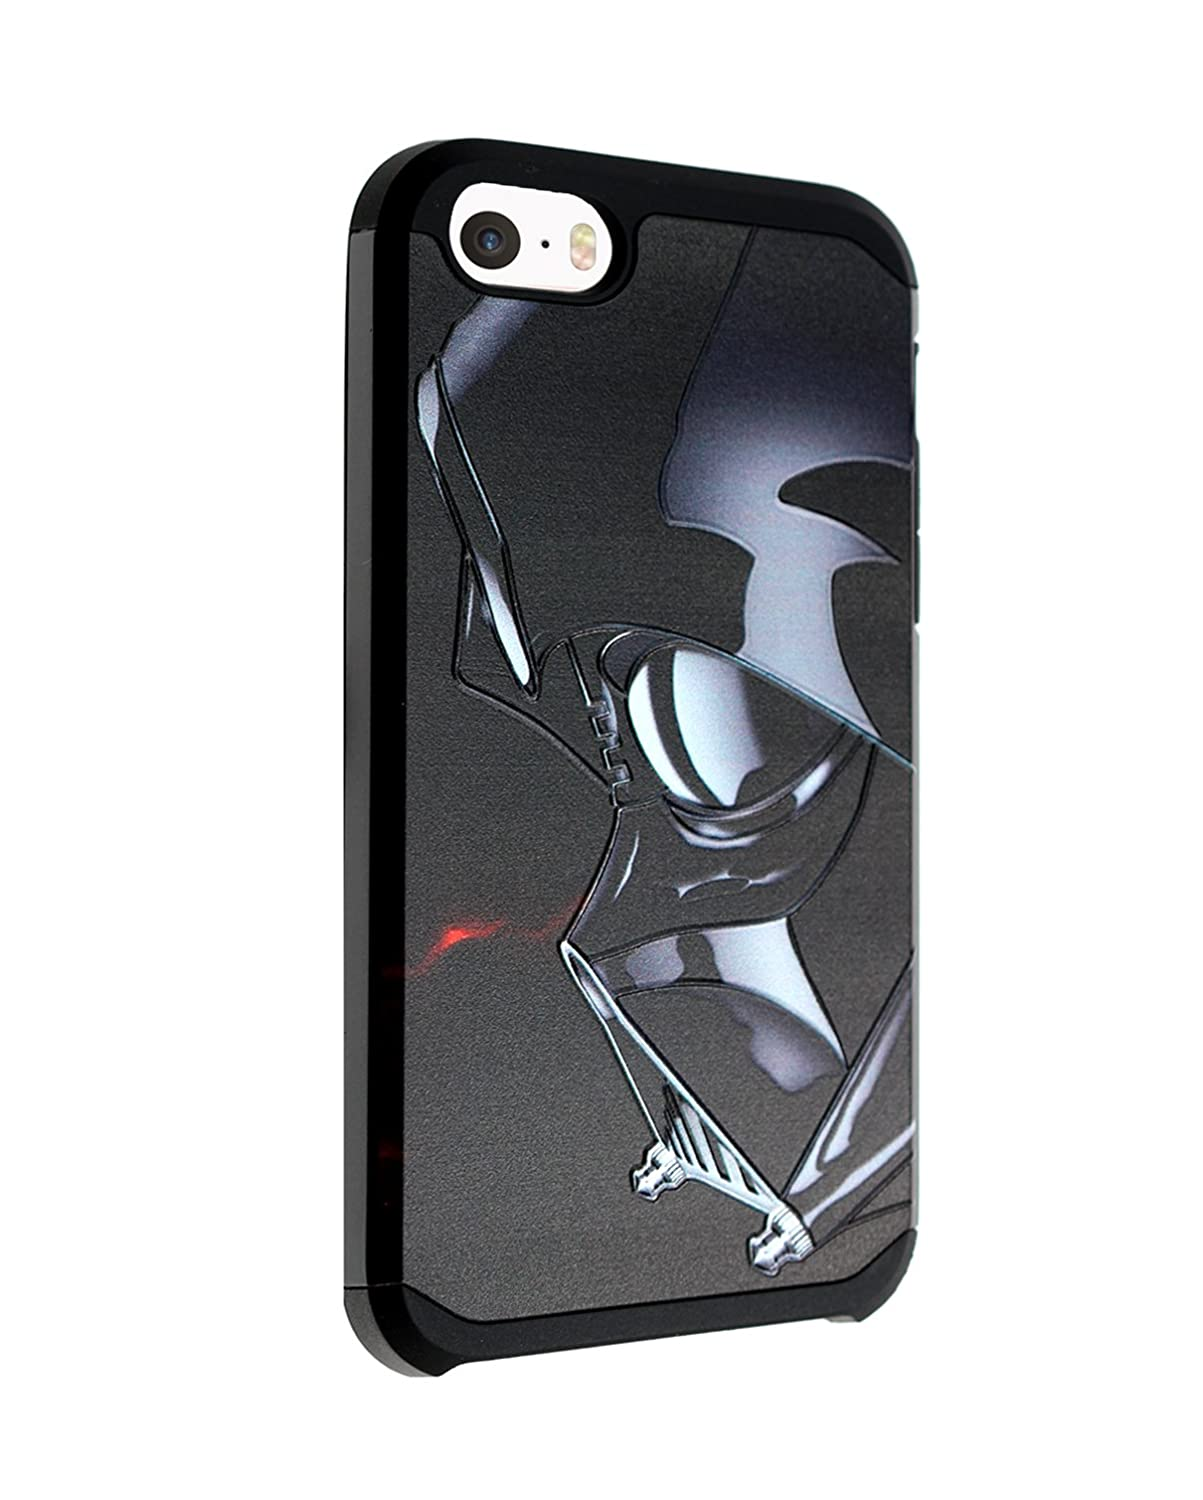 reputable site cc7e4 7b895 iPhone SE Case, DURARMOR iPhone SE Darth Vader Star Wars Dual Layer Hybrid  ShockProof Ultra Slim Fit Armor Air Cushion Defender Protector Cover for ...